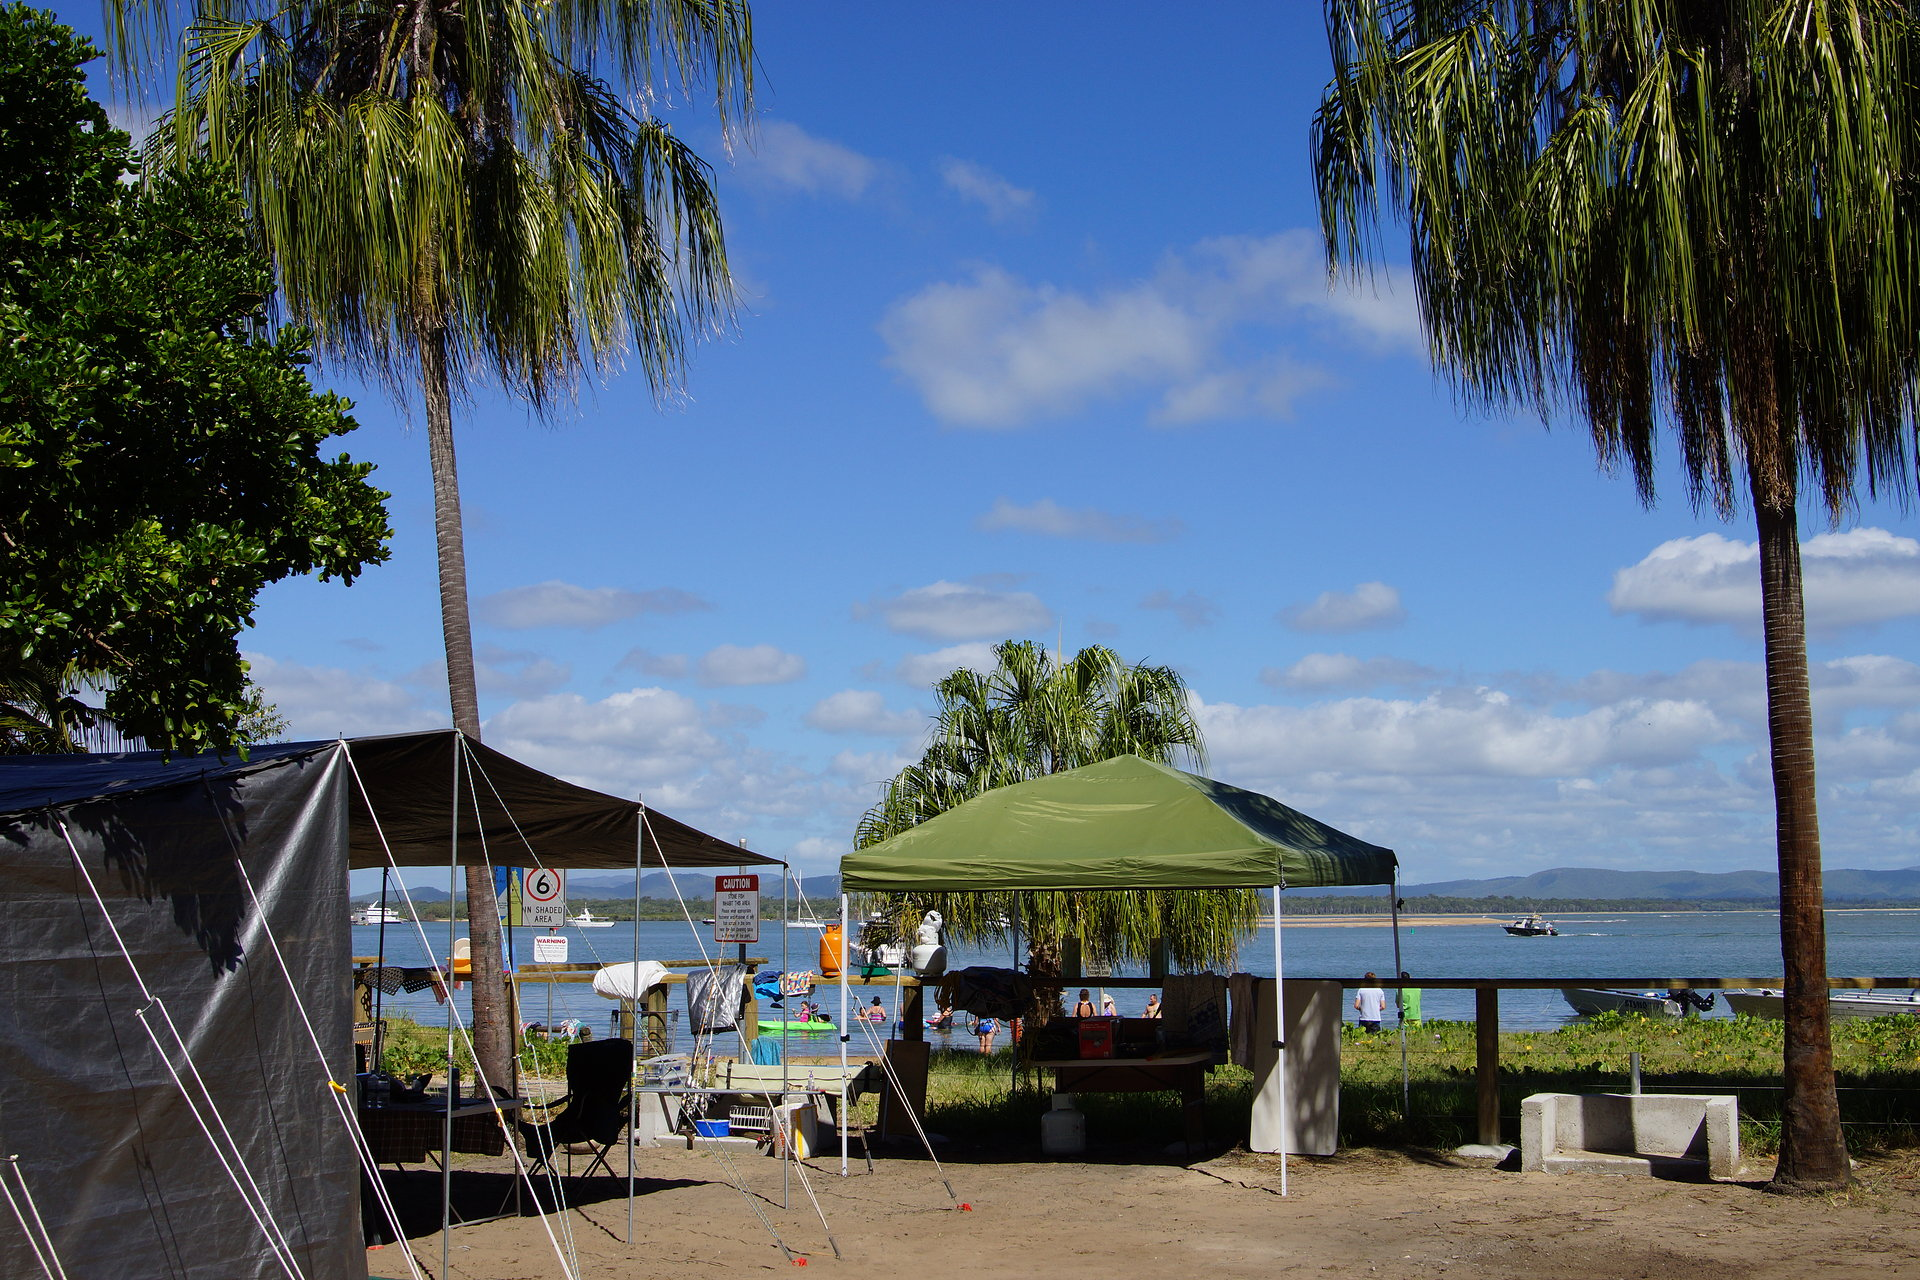 Beachfront camp